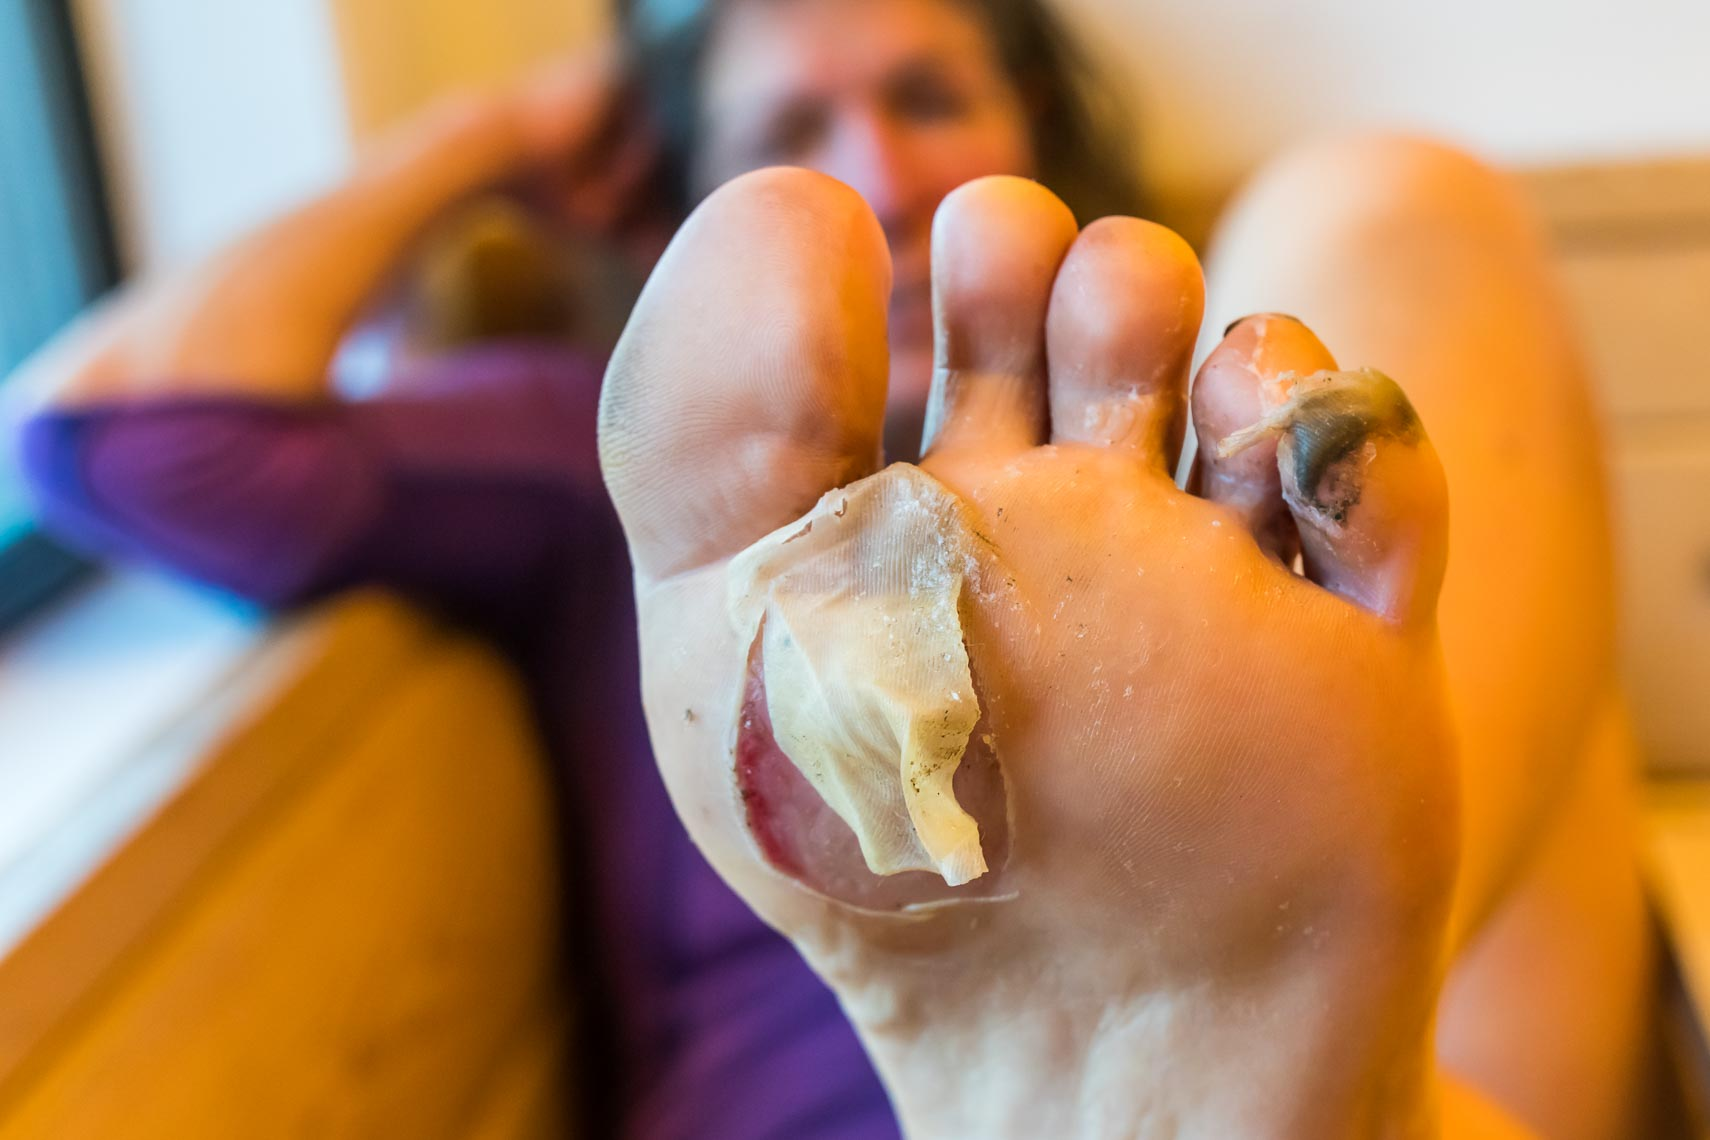 Pacific Crest Trail Injury - Blisters | Michael DeYoung